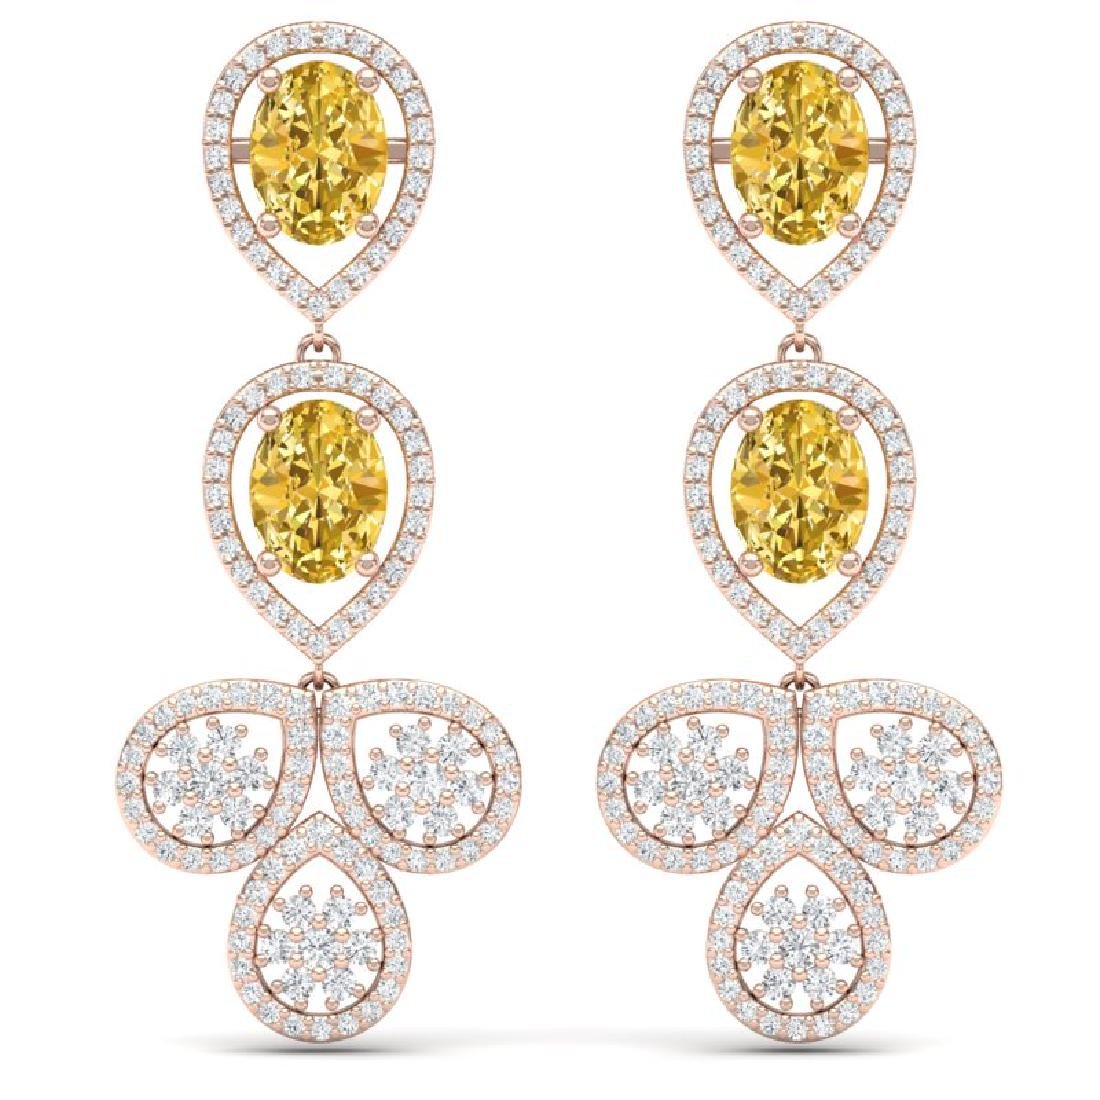 8.15 CTW Royalty Canary Citrine & VS Diamond Earrings